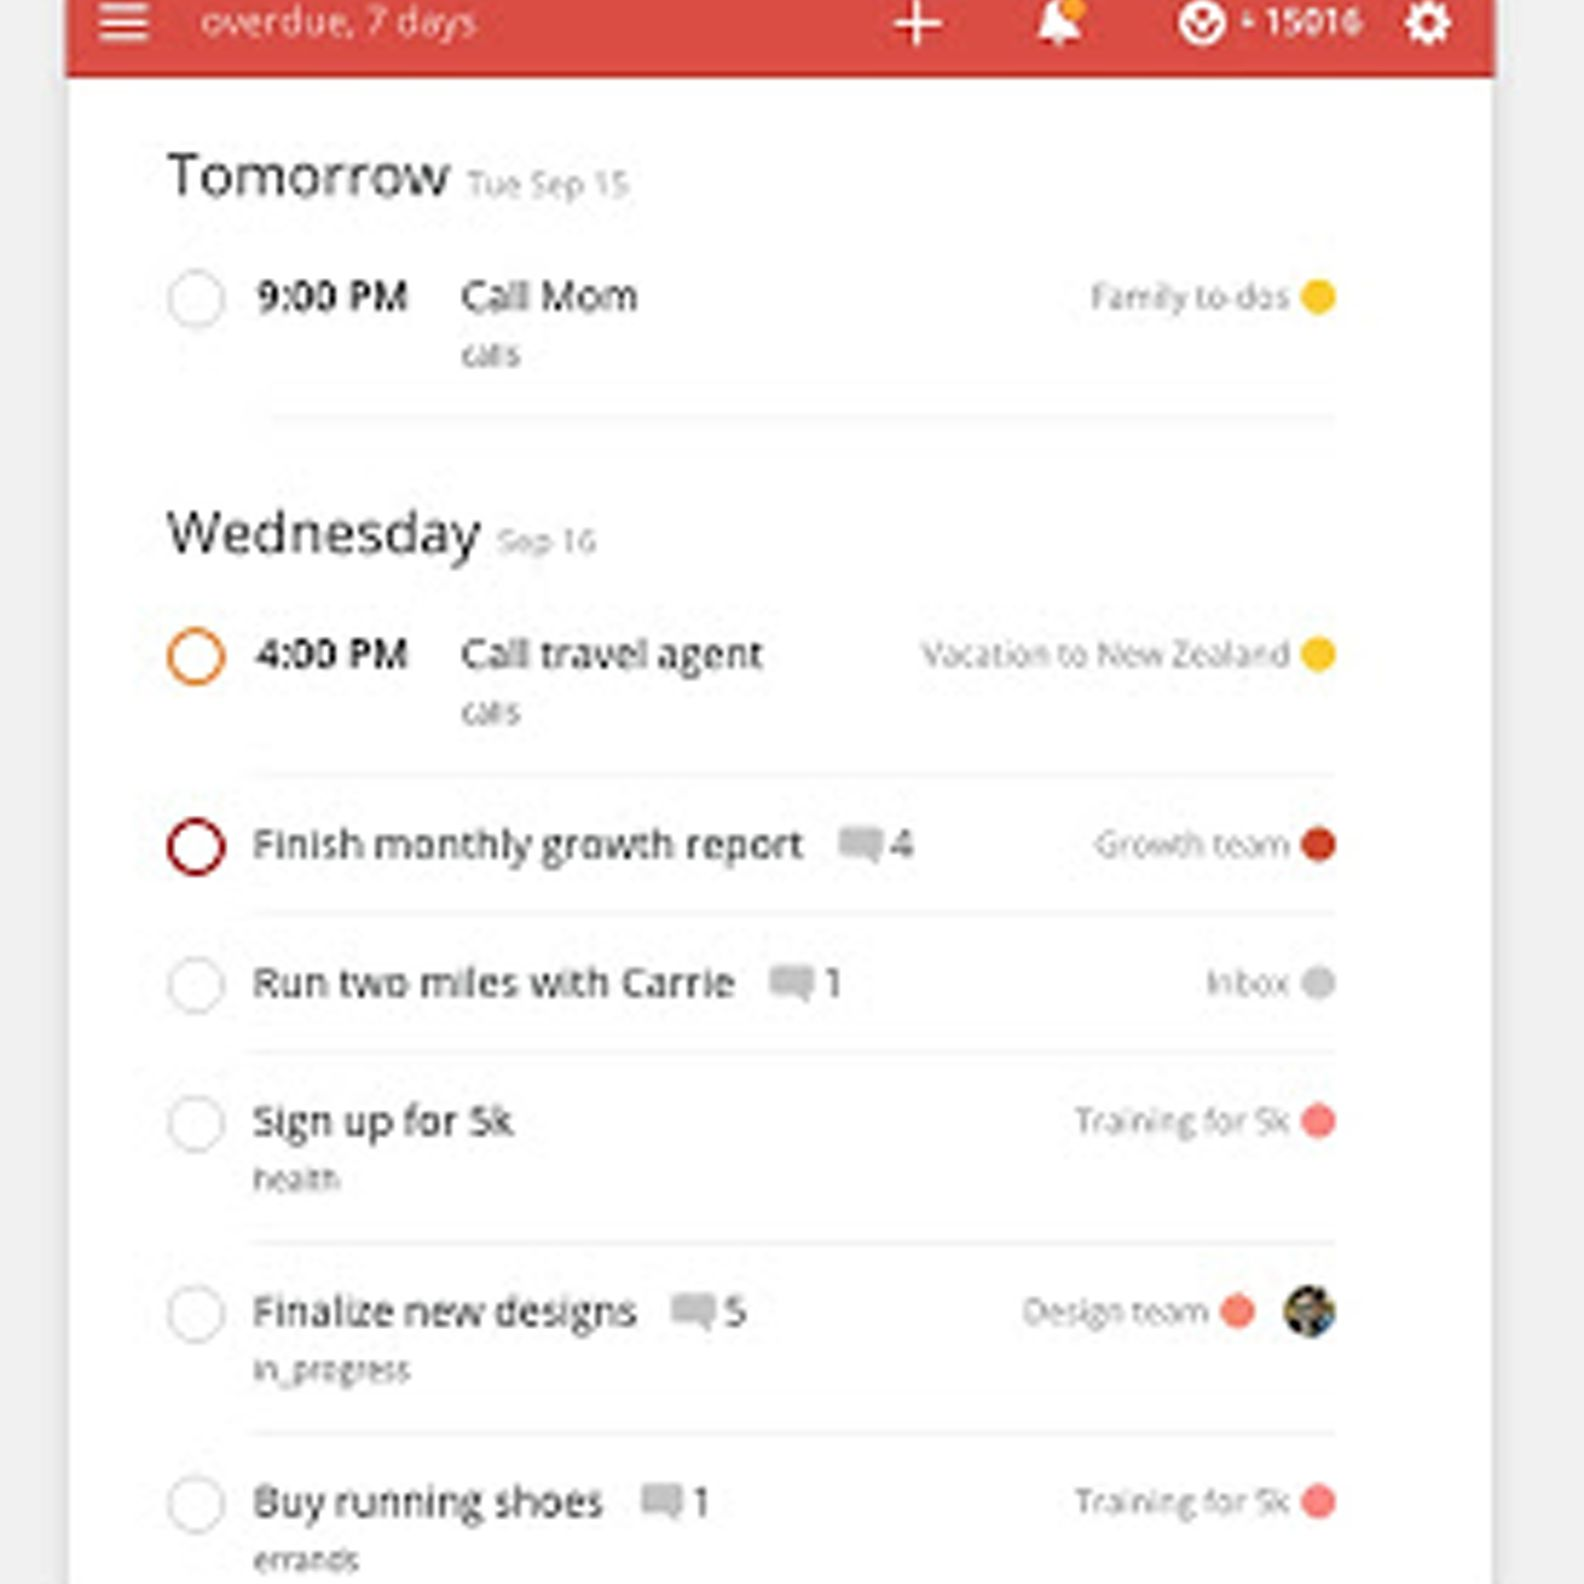 Todoist task list Chrome extension in use.